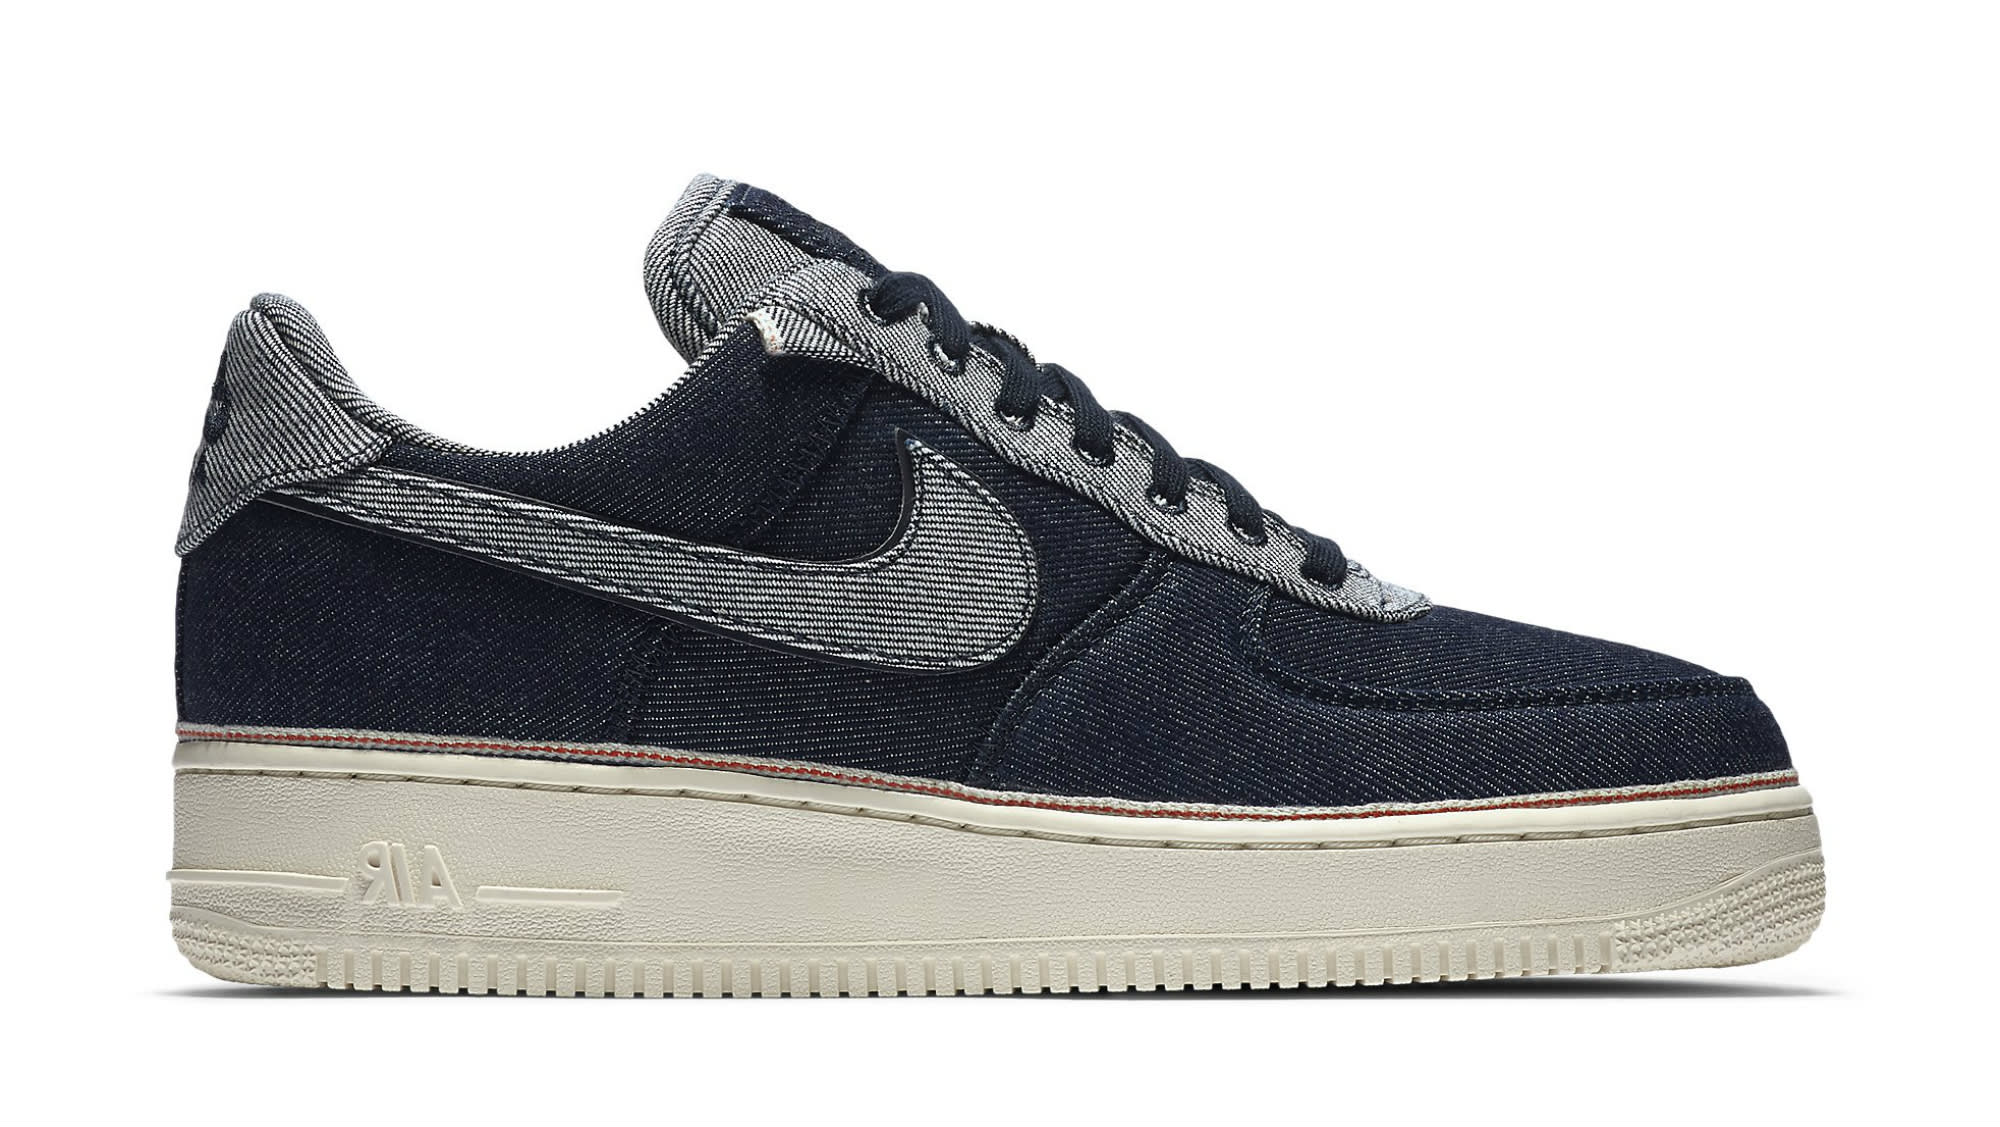 best authentic 66a91 f7805 Image via Nike 3x1-nike-air-force-1-low-raw-indigo-